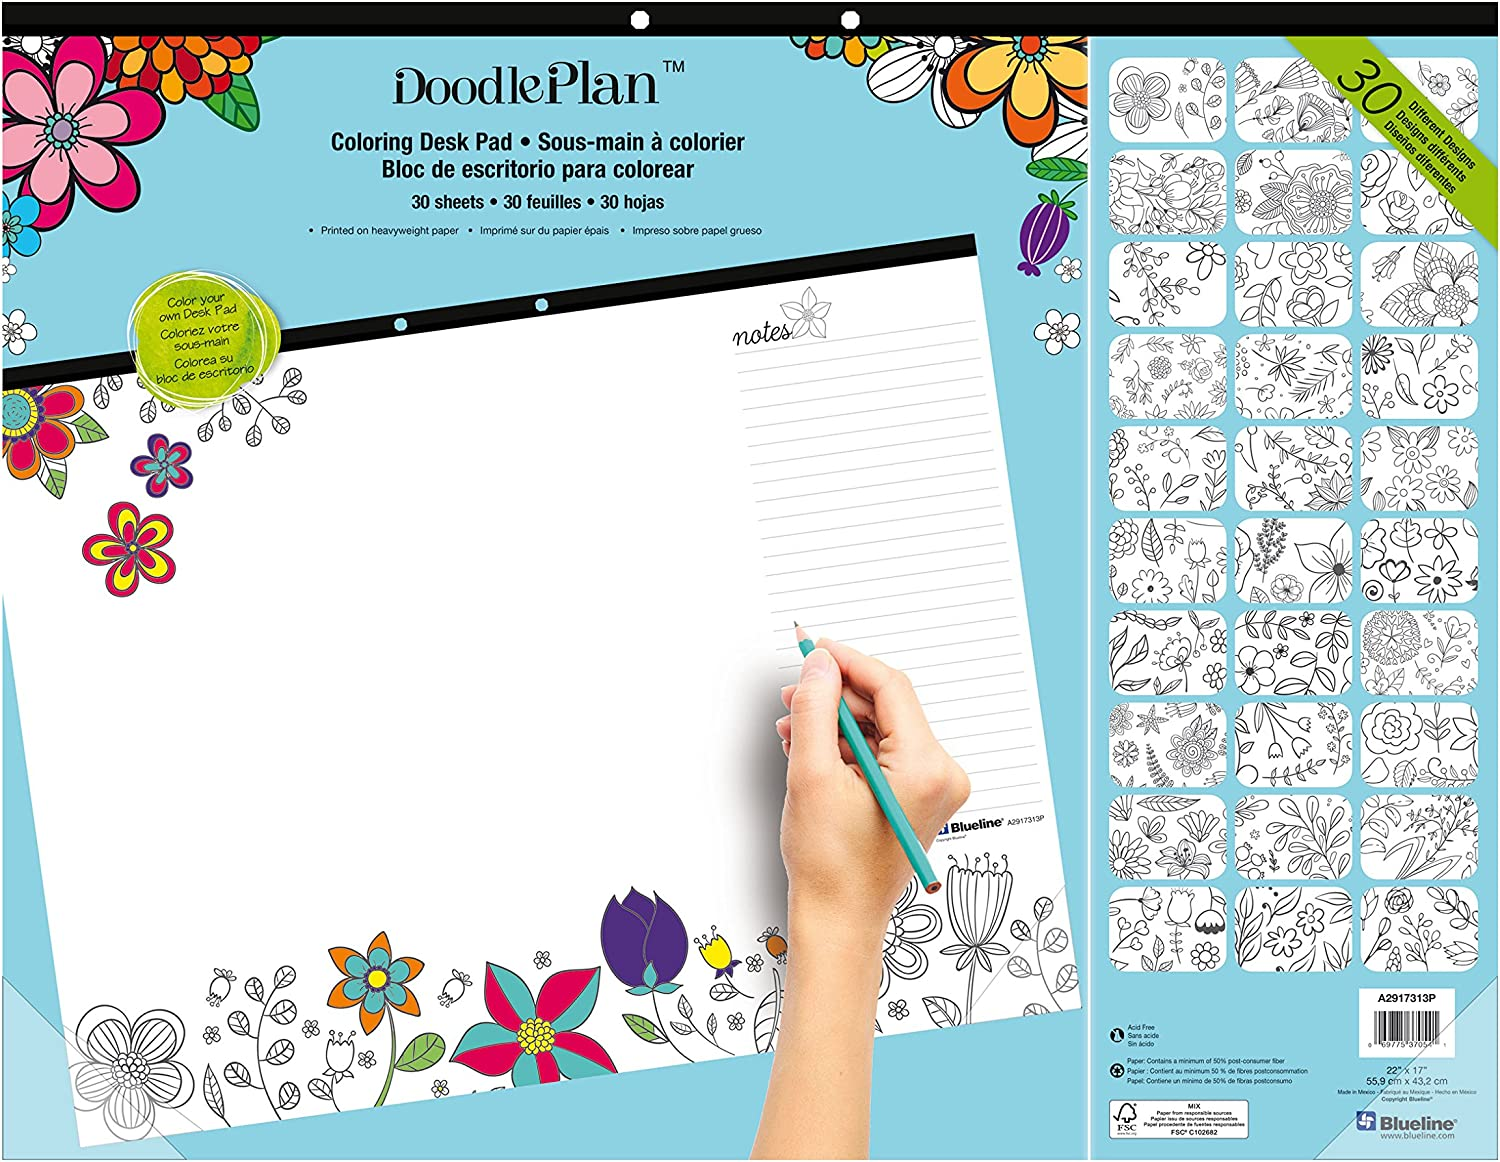 Blueline Doodle Plan Coloring Desk Pad, Garden Design, 22 x 17 (A2917313P)